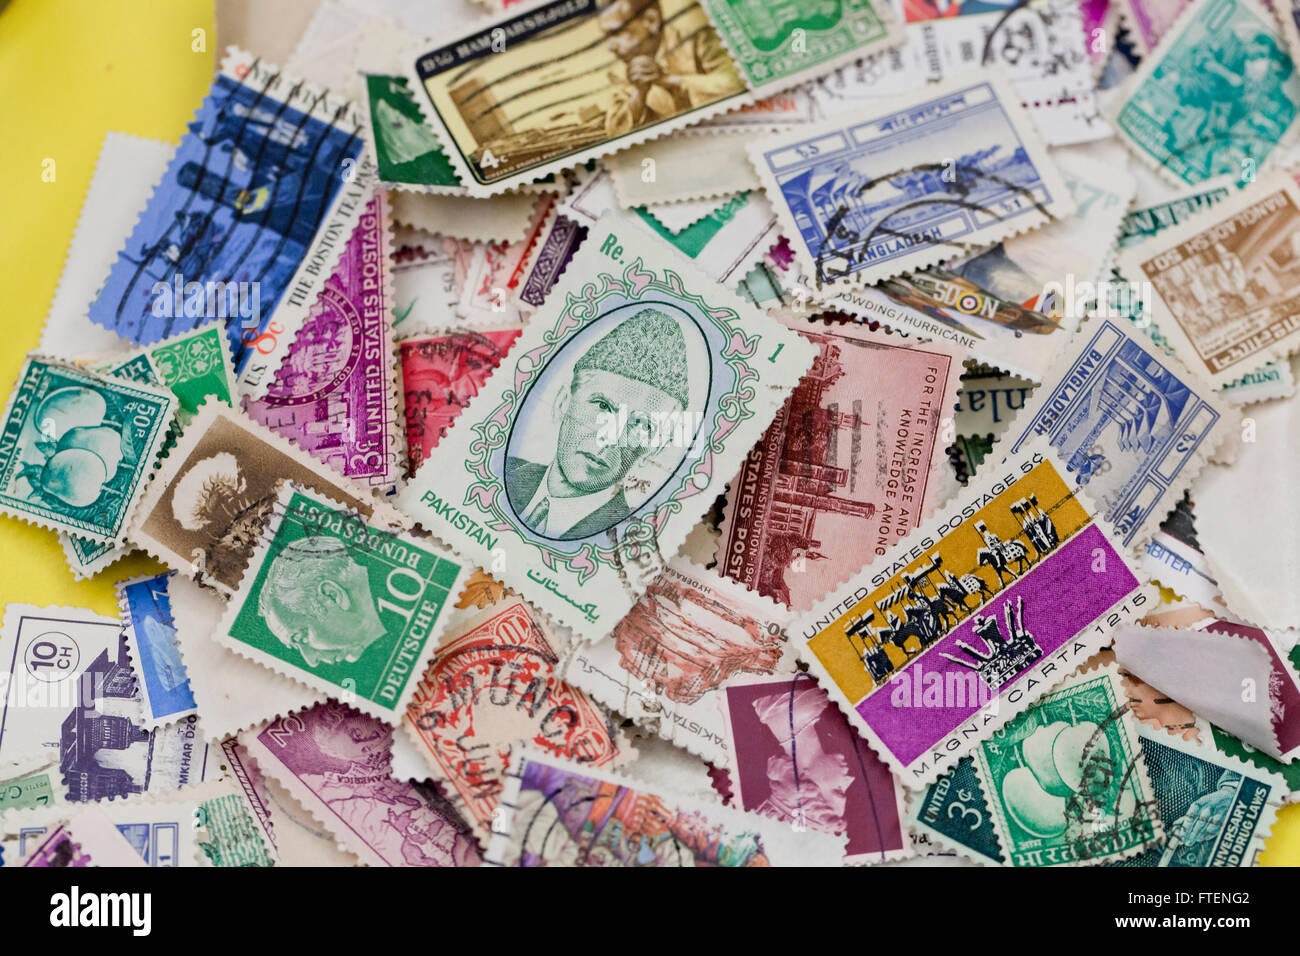 Pile of used stamps - Stock Image